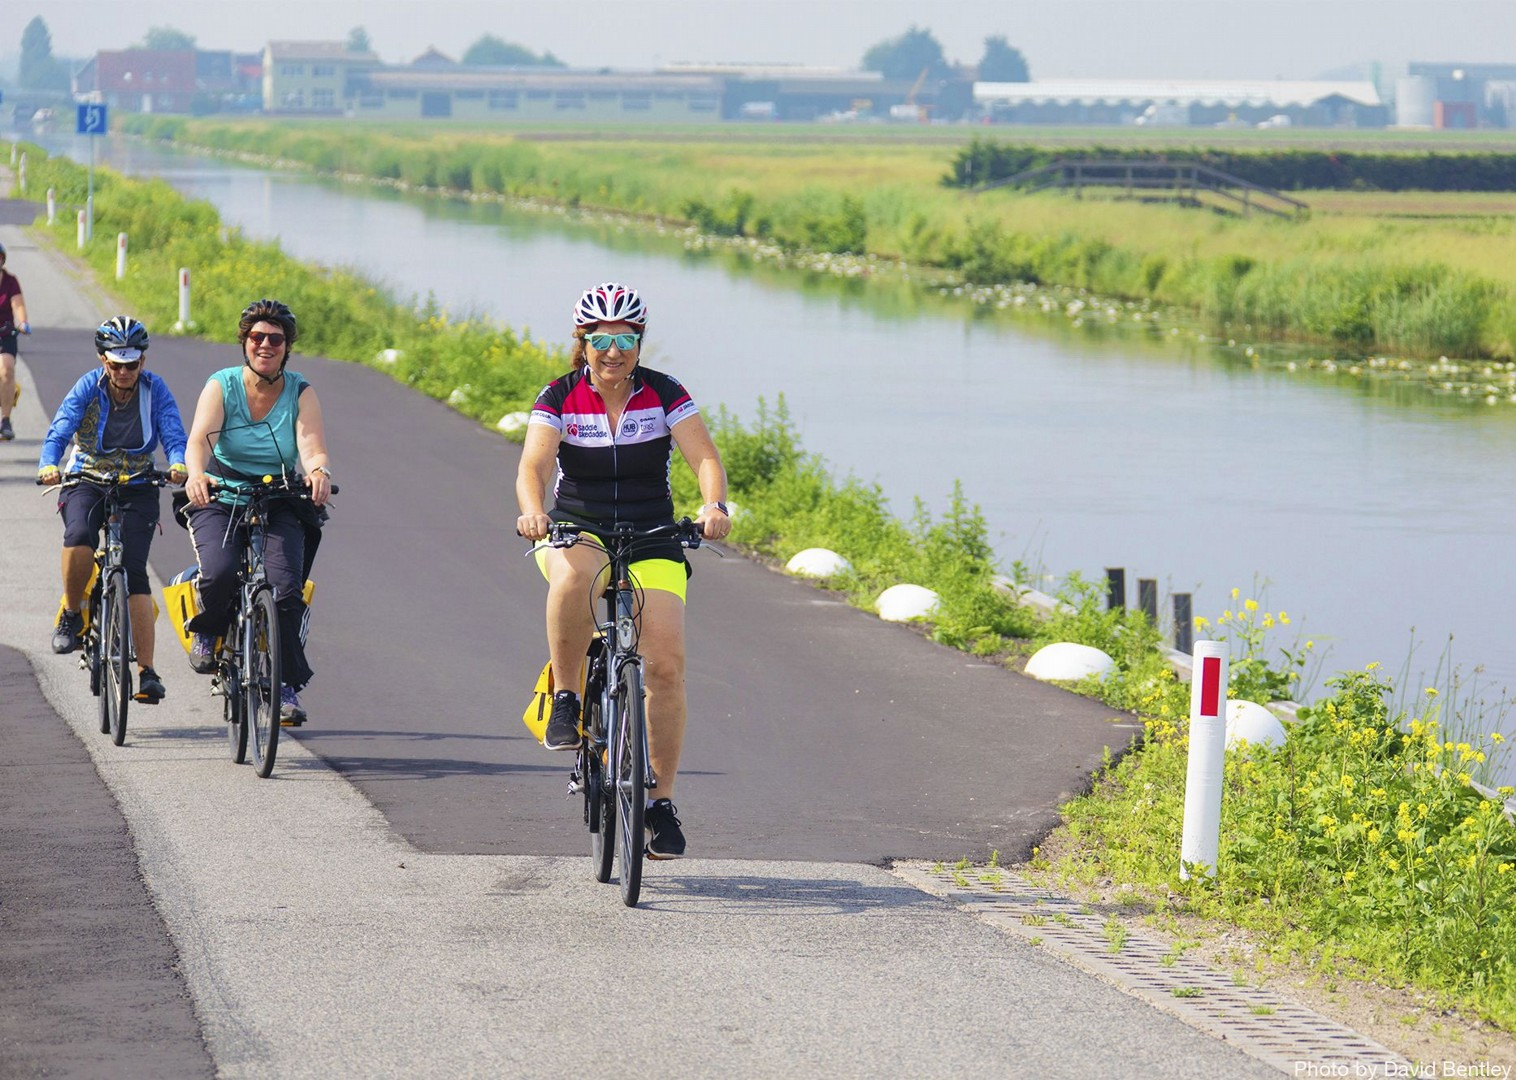 gentle-traffic-free-cycle-paths-for-all-abilities.jpg - Holland - Windmills and Golden Beaches - Bike and Barge Holiday - Family Cycling